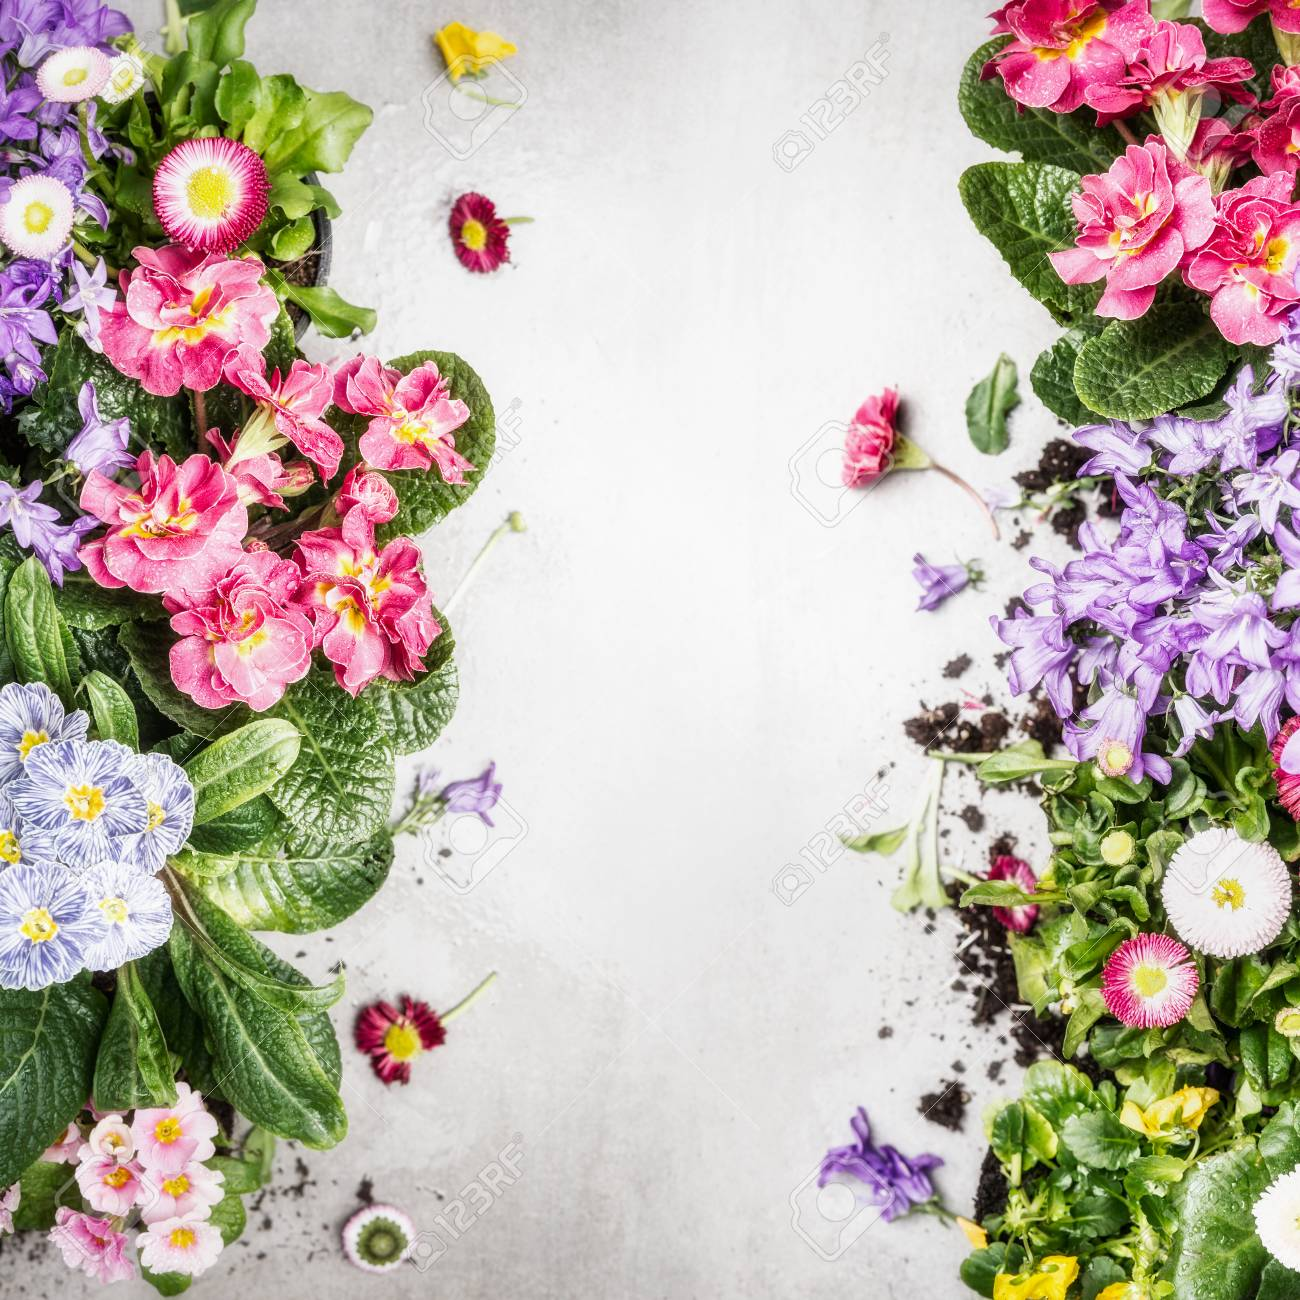 Various colorful garden flowers and plants ,top view, frame